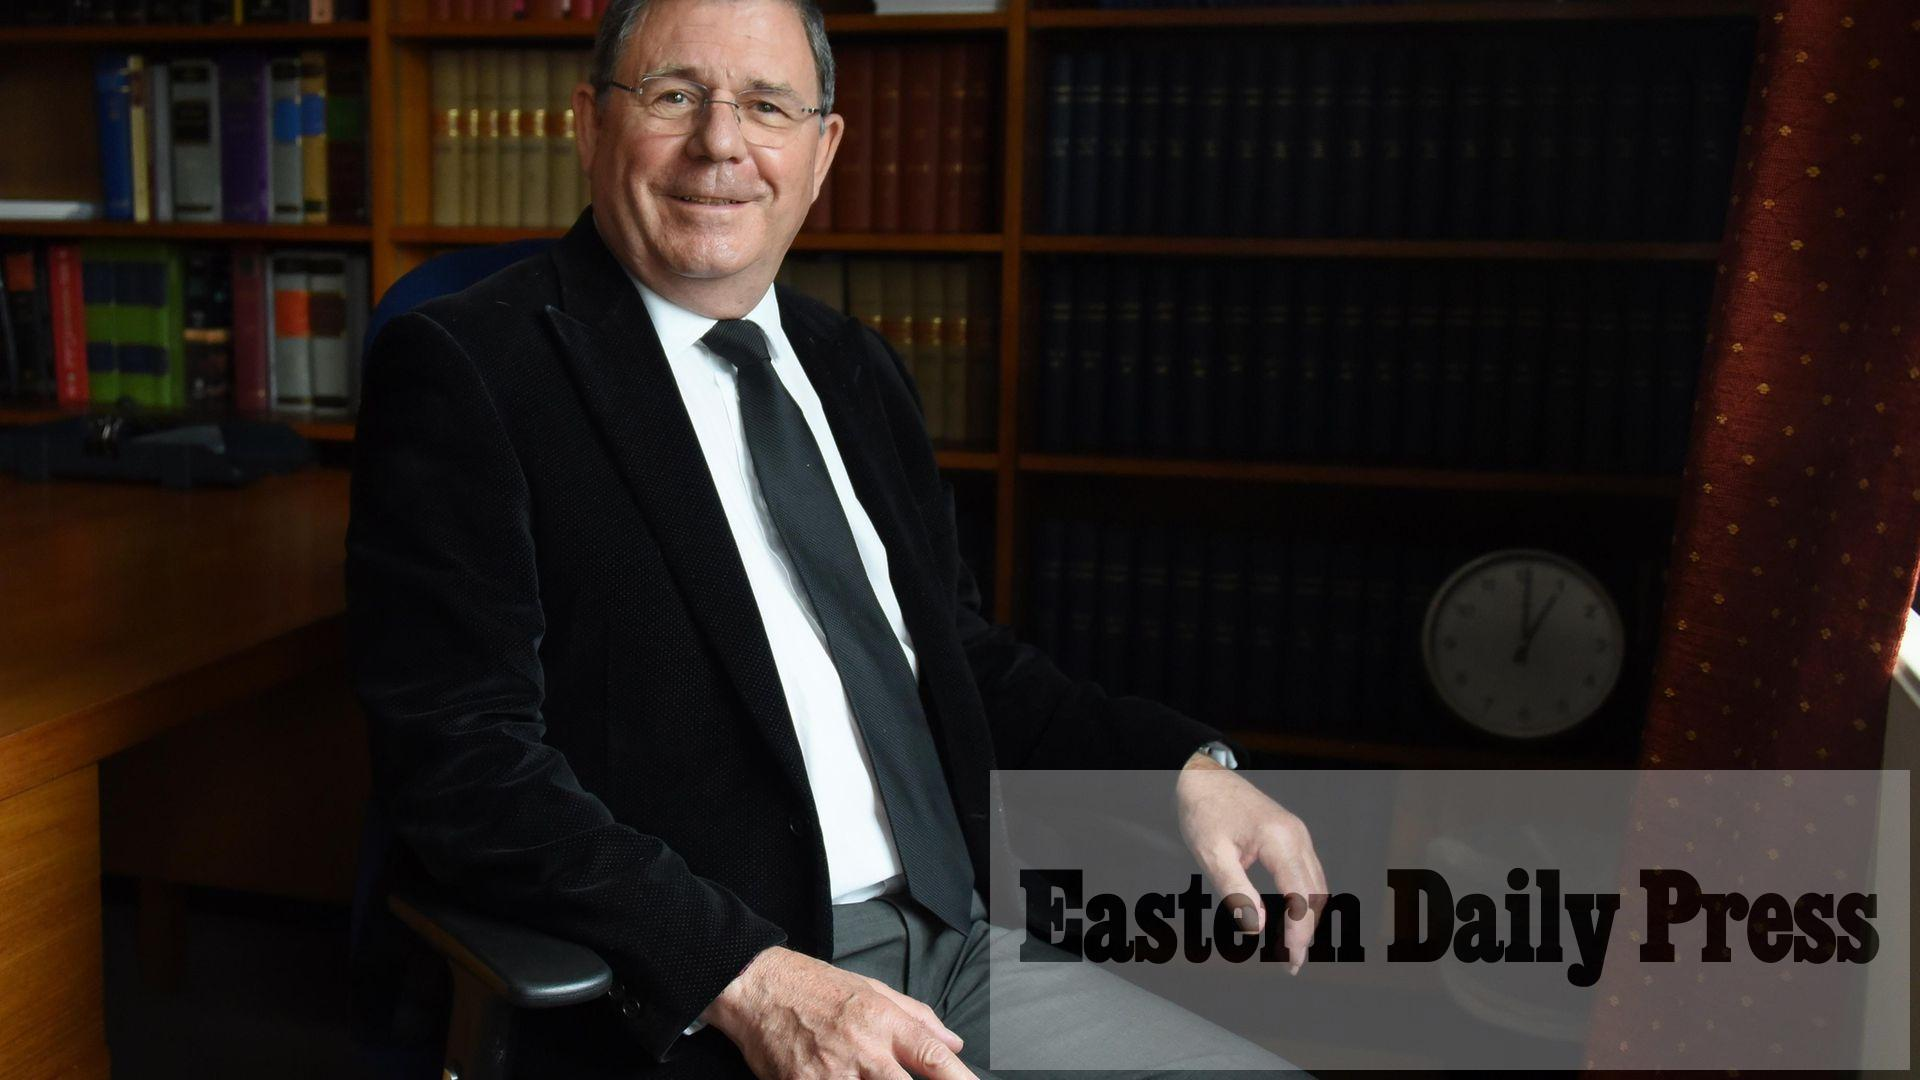 Retiring judge lifts lid on career and says Norwich 'best' resident job